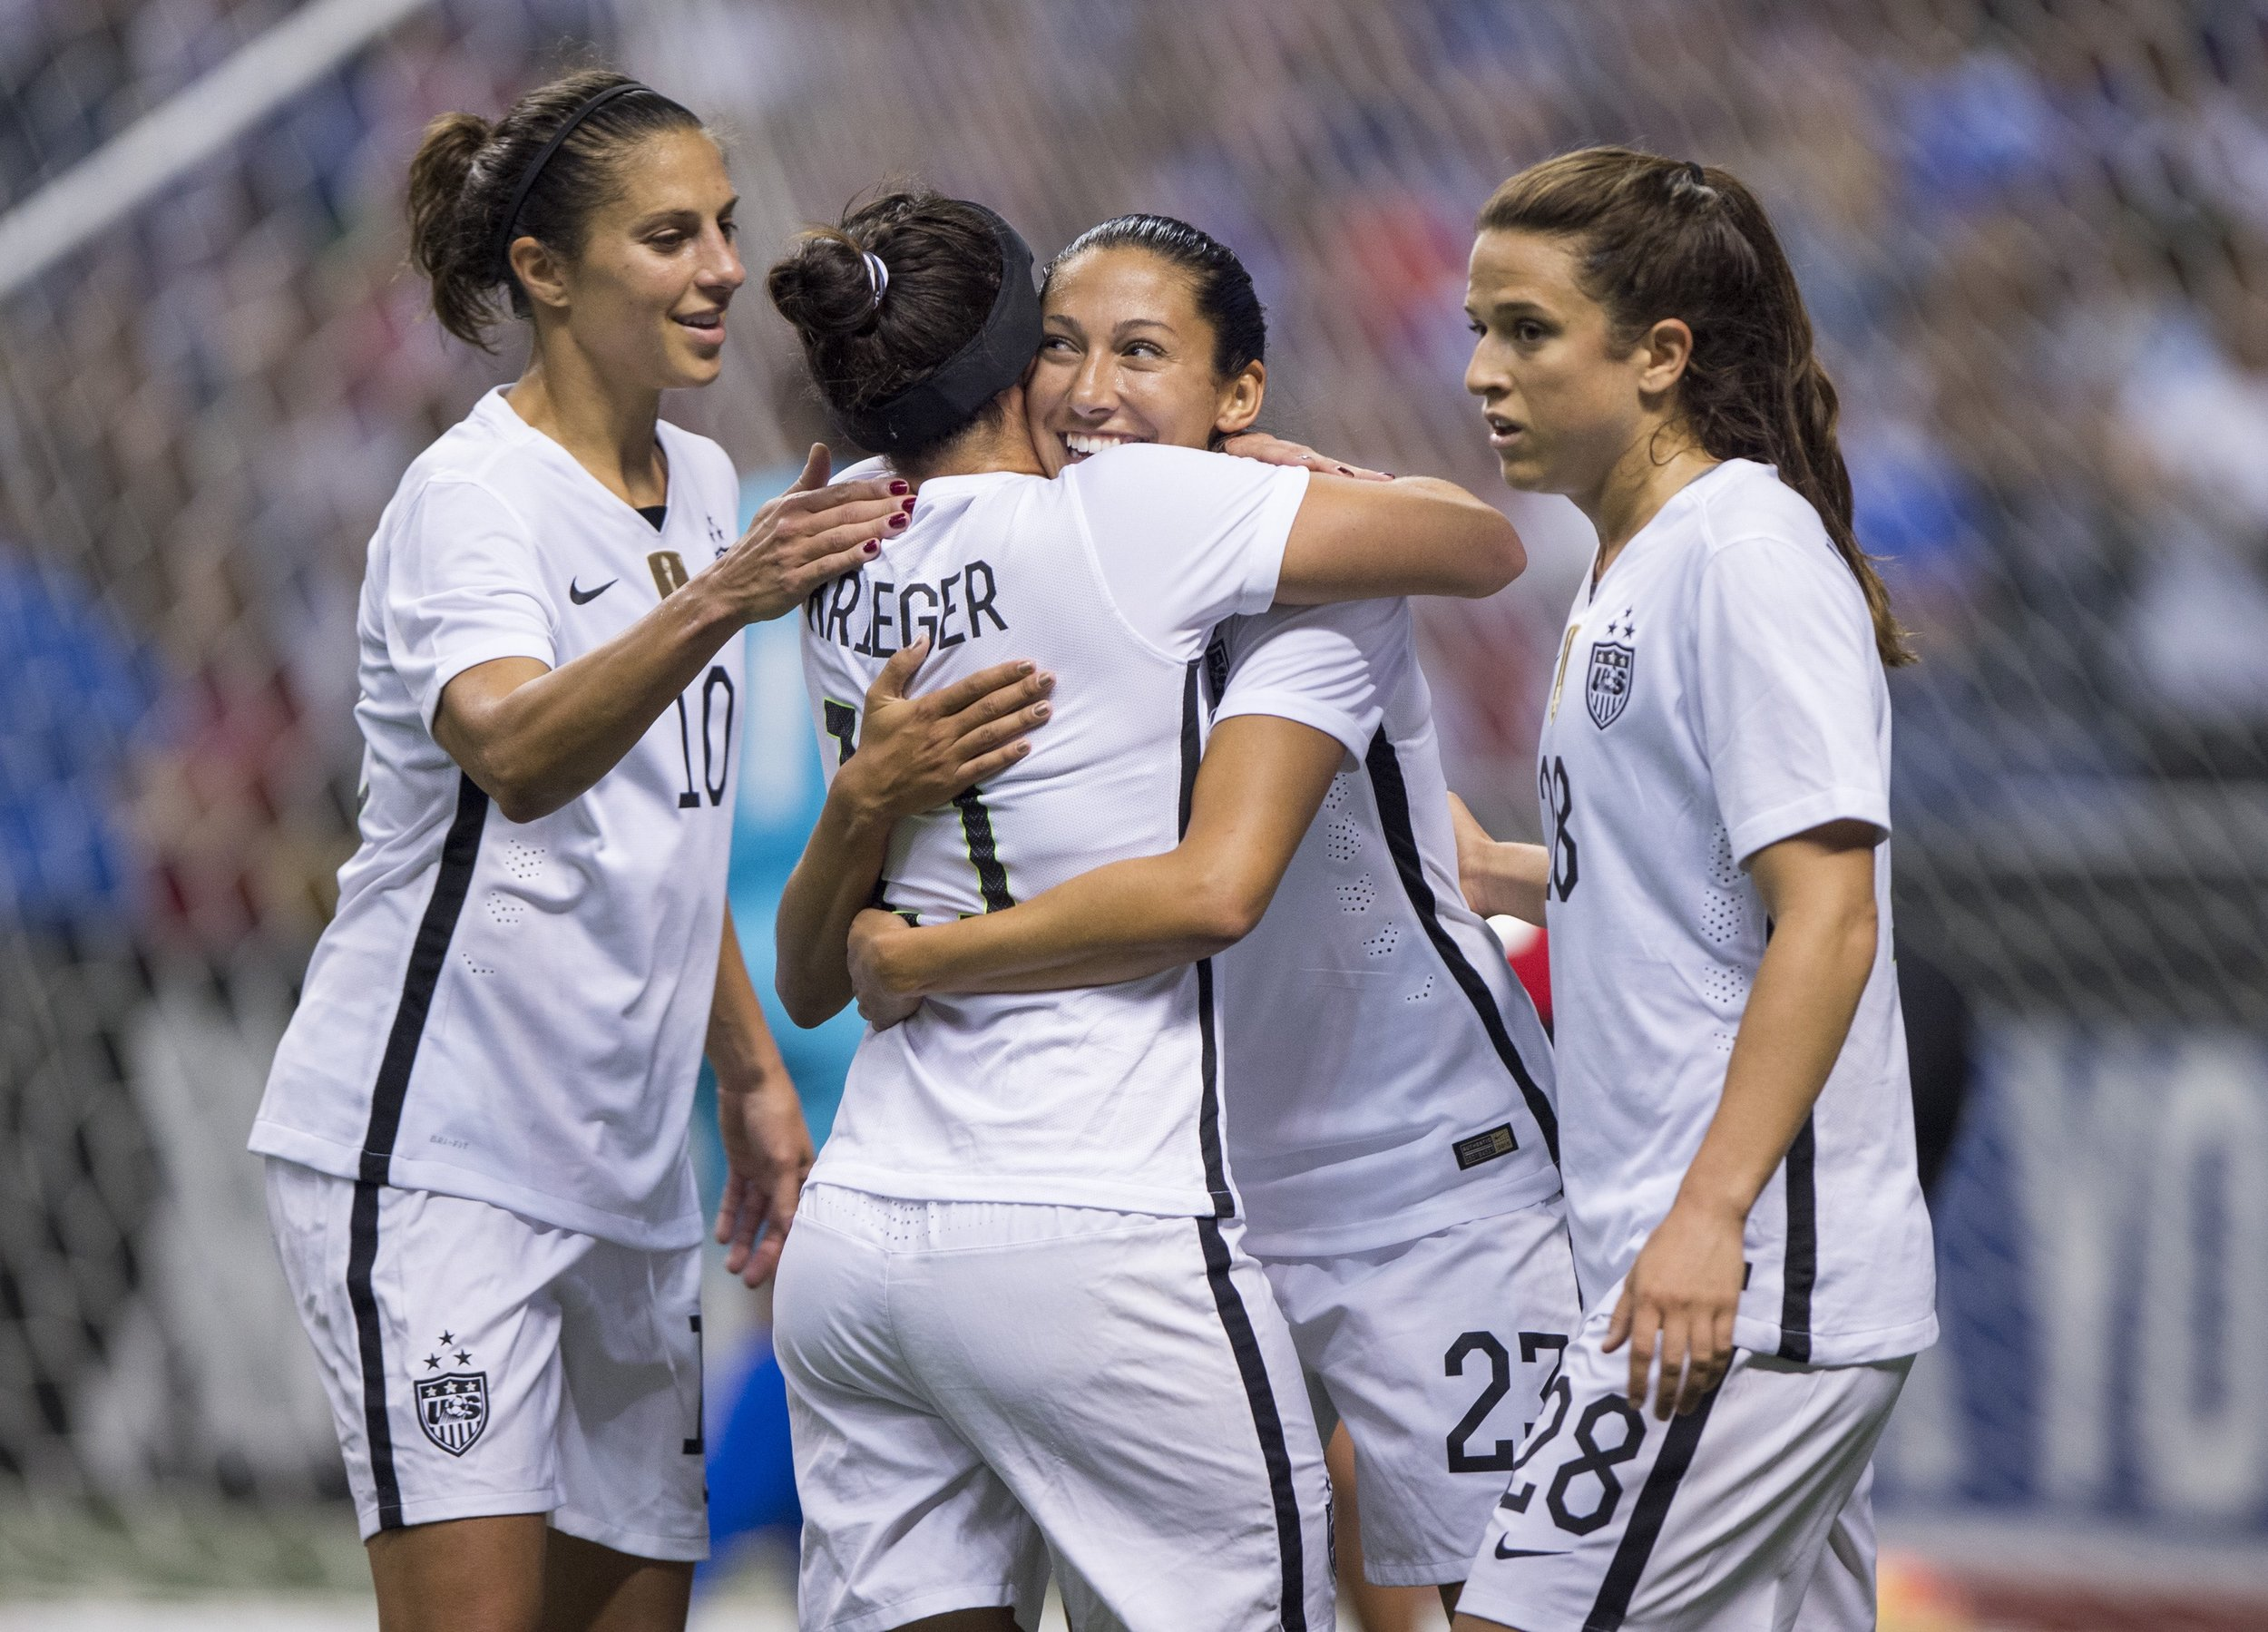 Christen Press, Ali Krieger-- San Antonio, TX - December 10, 2015:  The USWNT defeated Trinidad & Tobago 6-0 during the Victory Tour at the Alamodome. Photo by Brad Smith